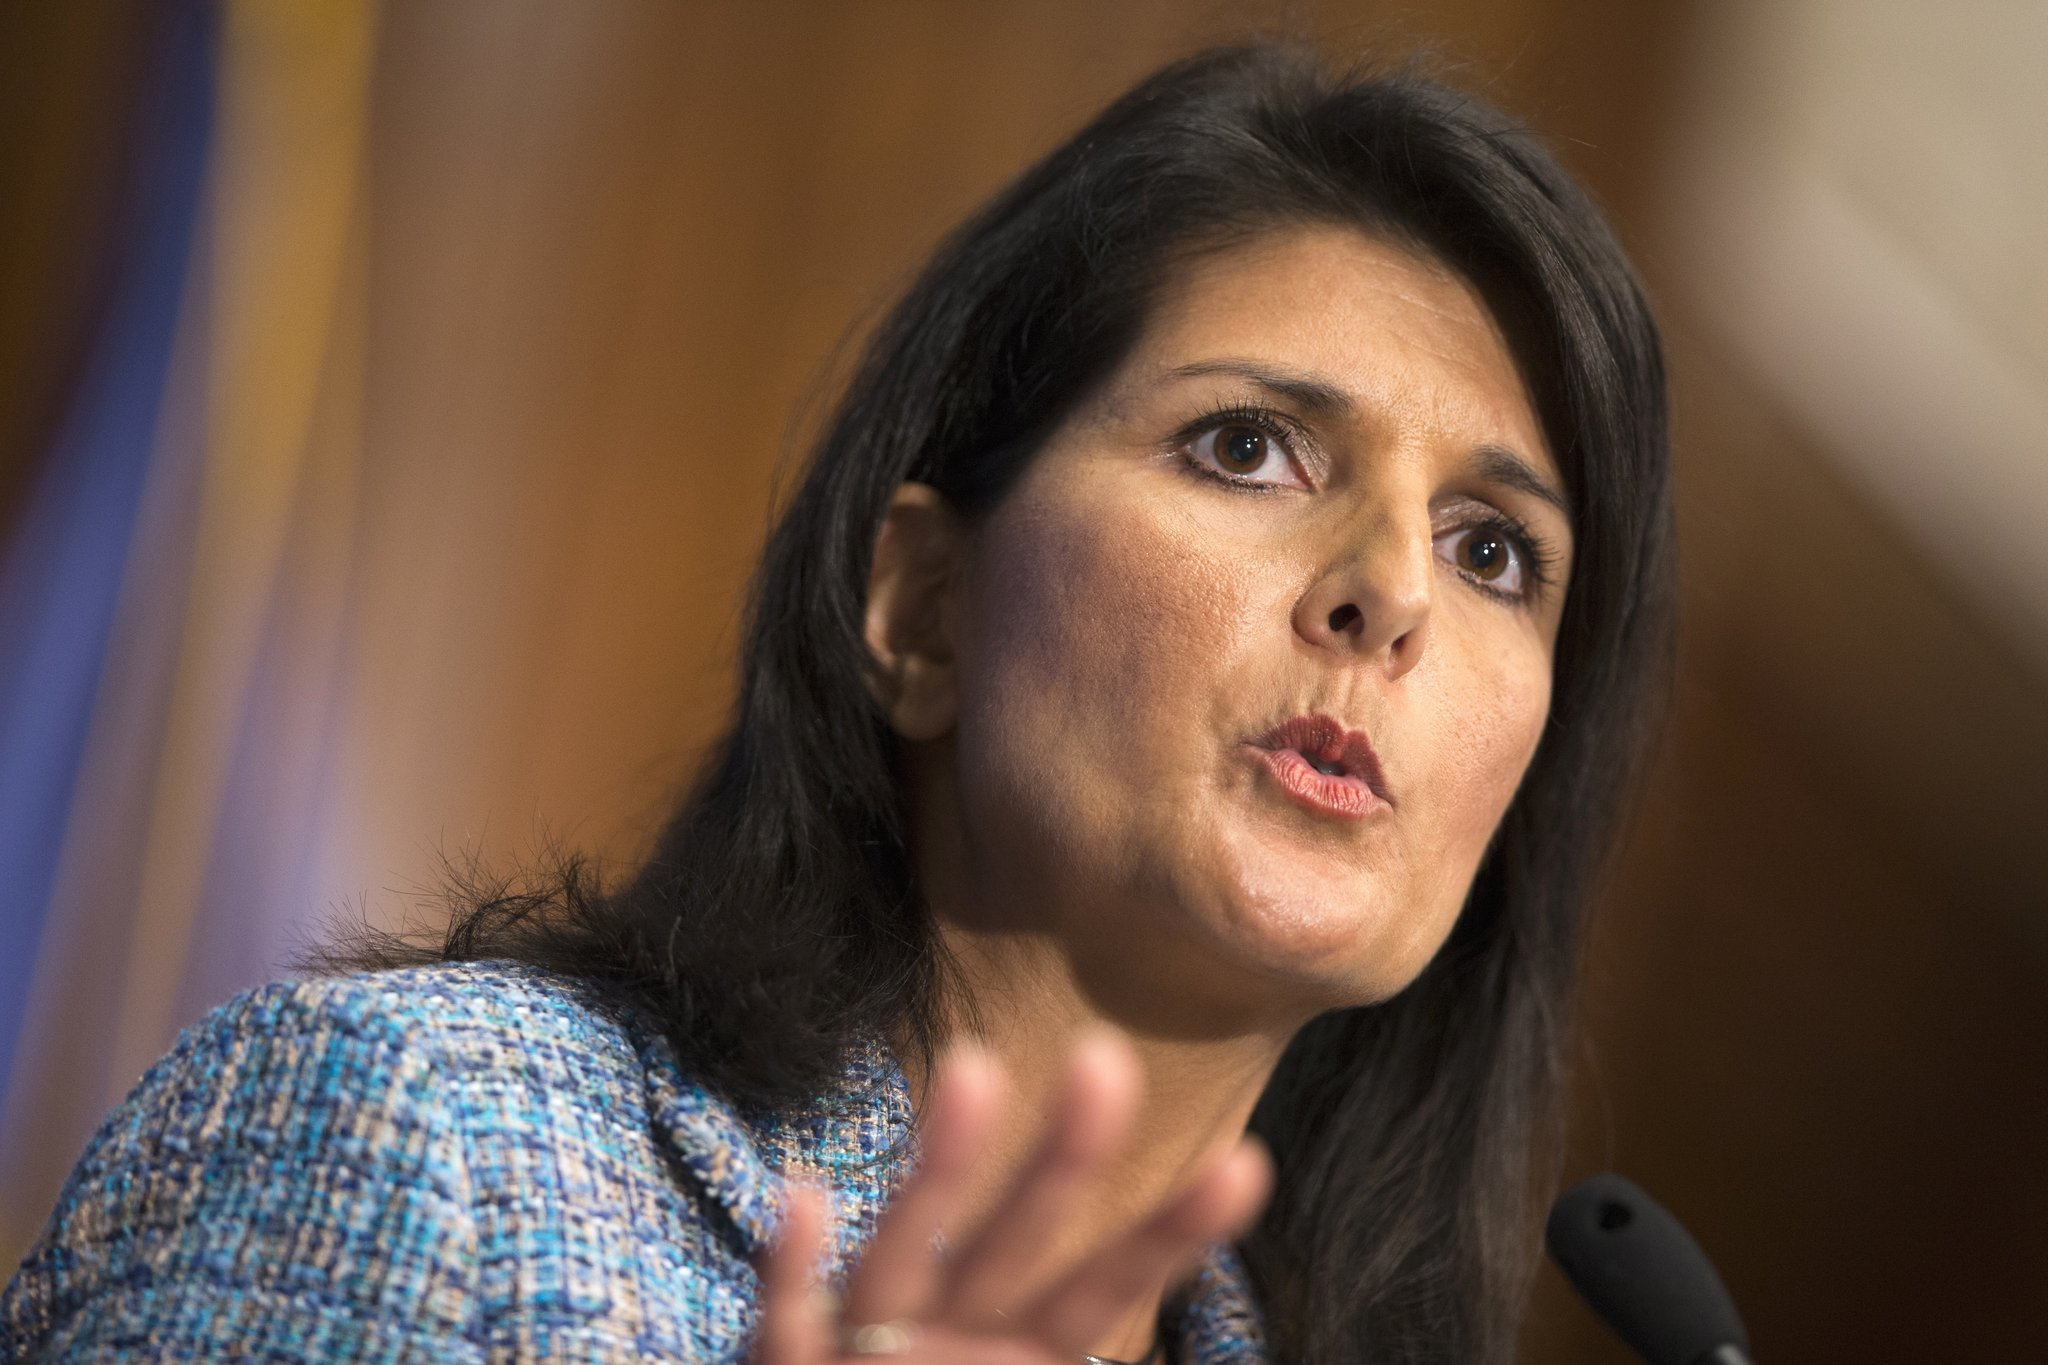 Biography of Nimrata Nikki Randhawa Haley Wikipedia - UN Ambassador